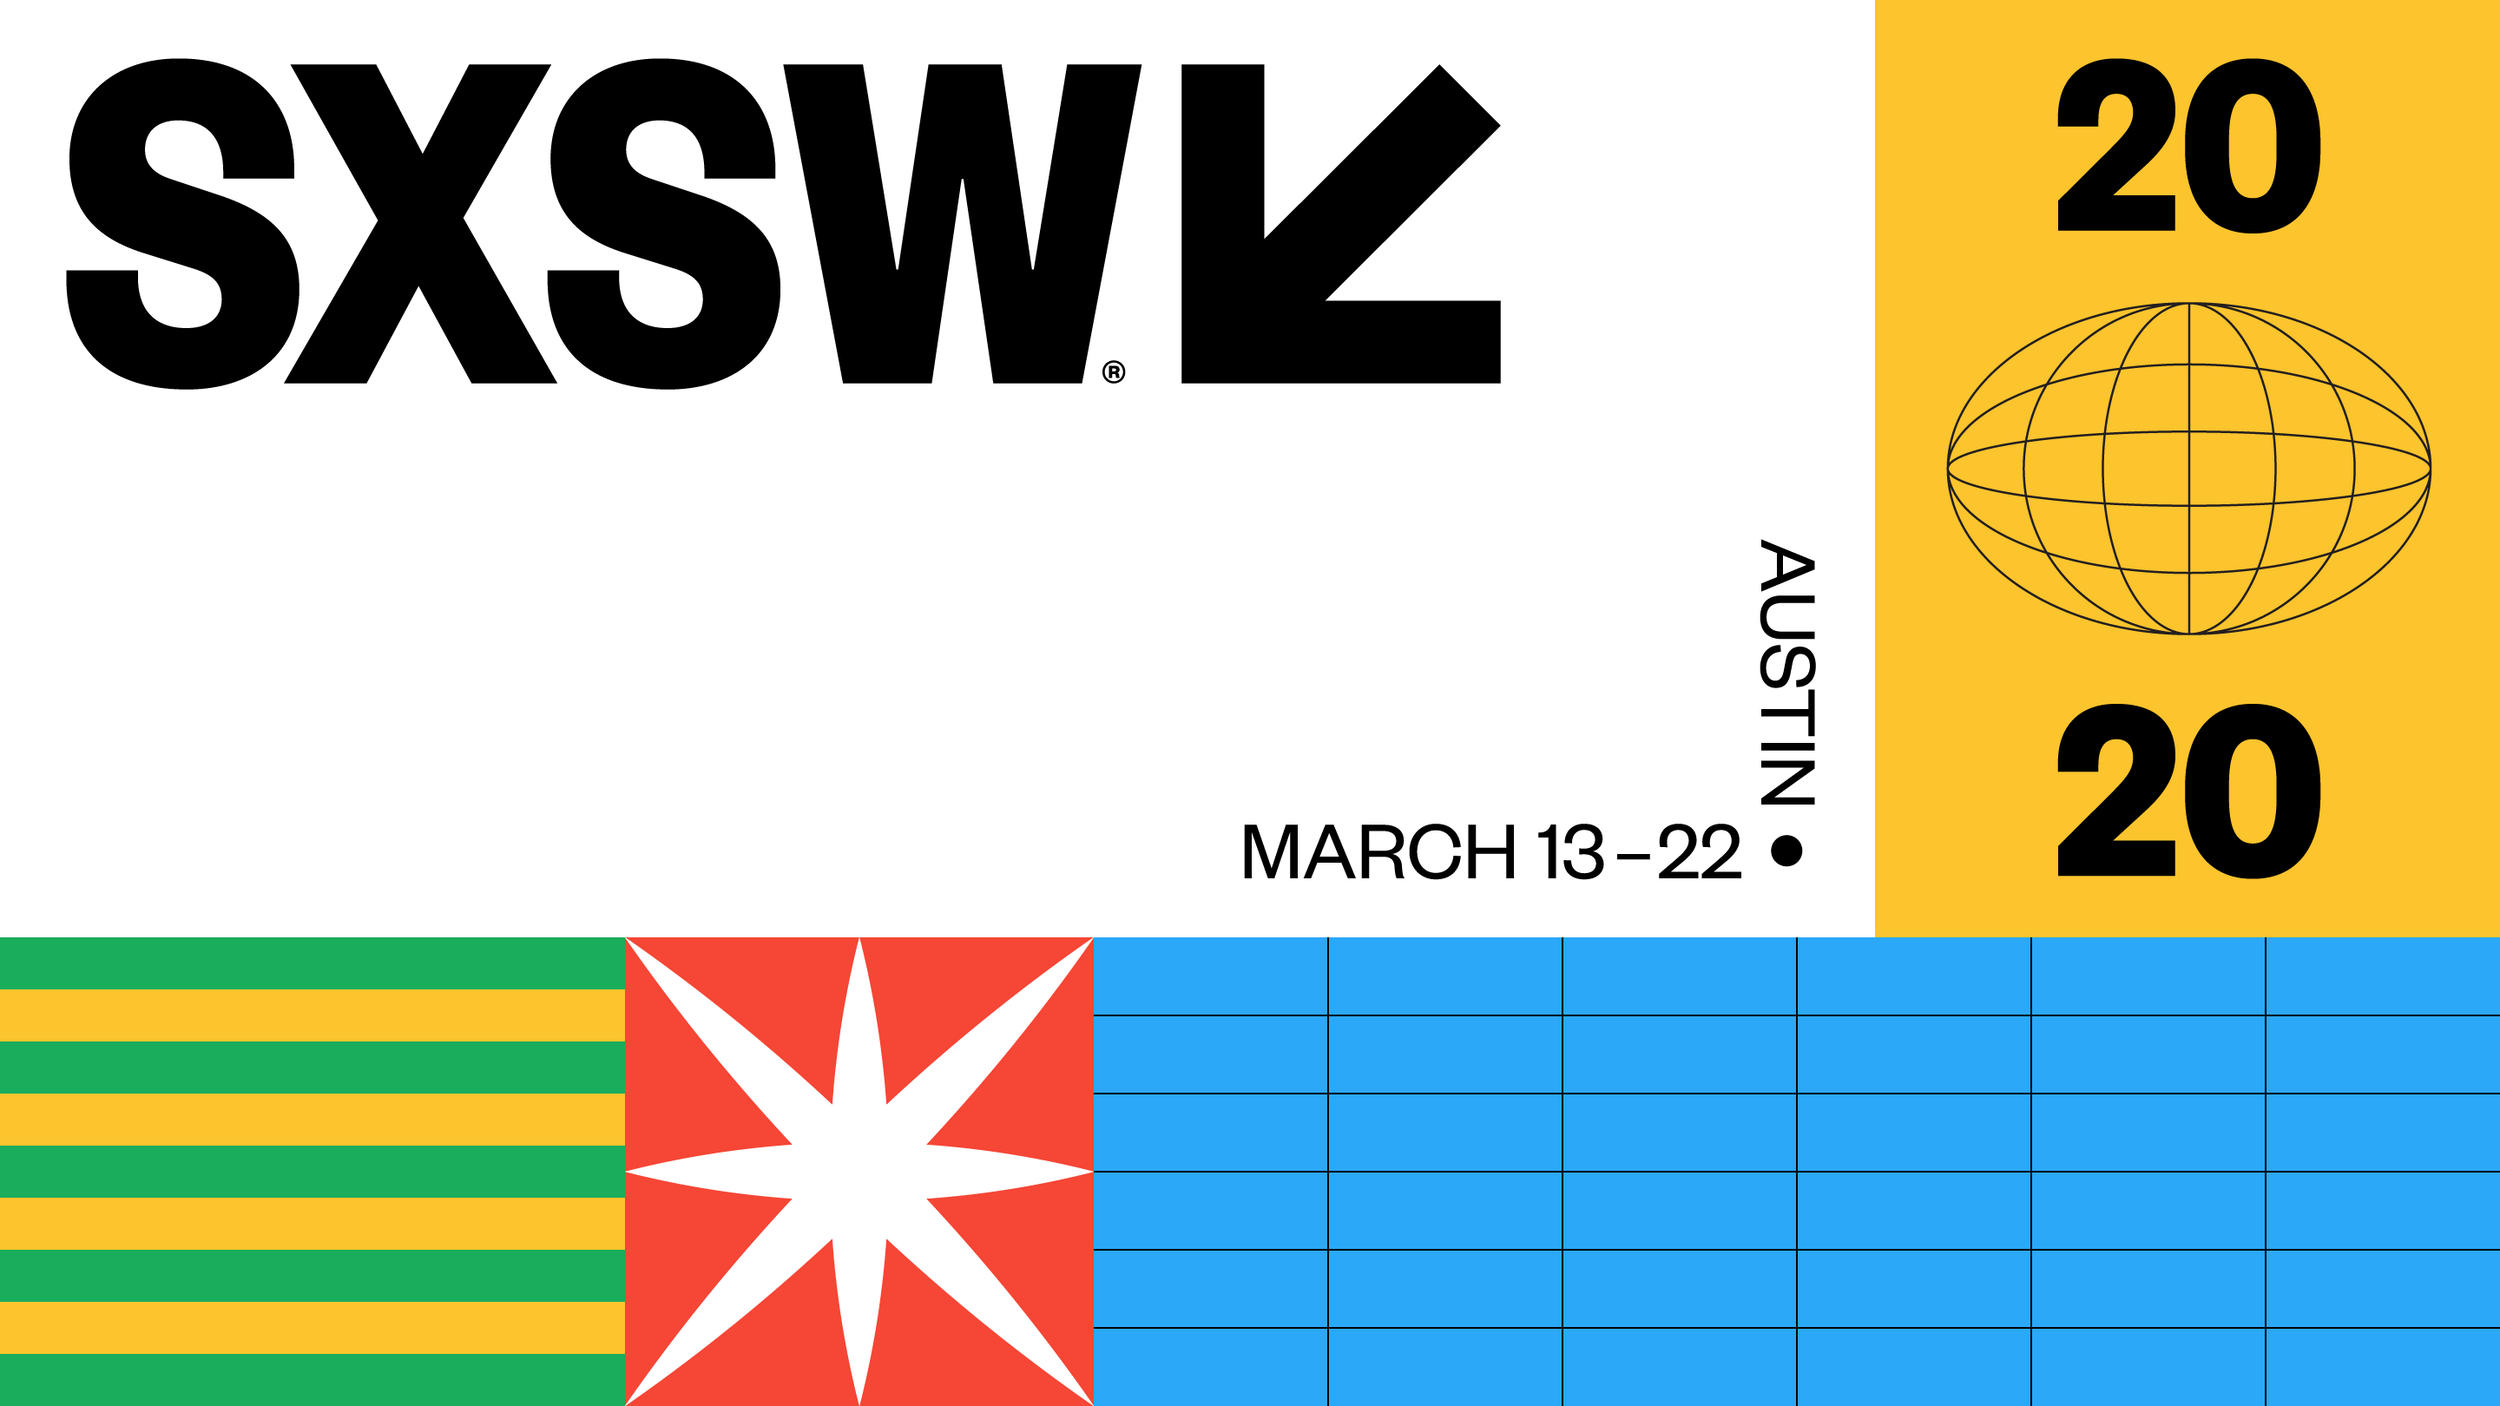 20_SXSW_Website_SEO-1 (1).png